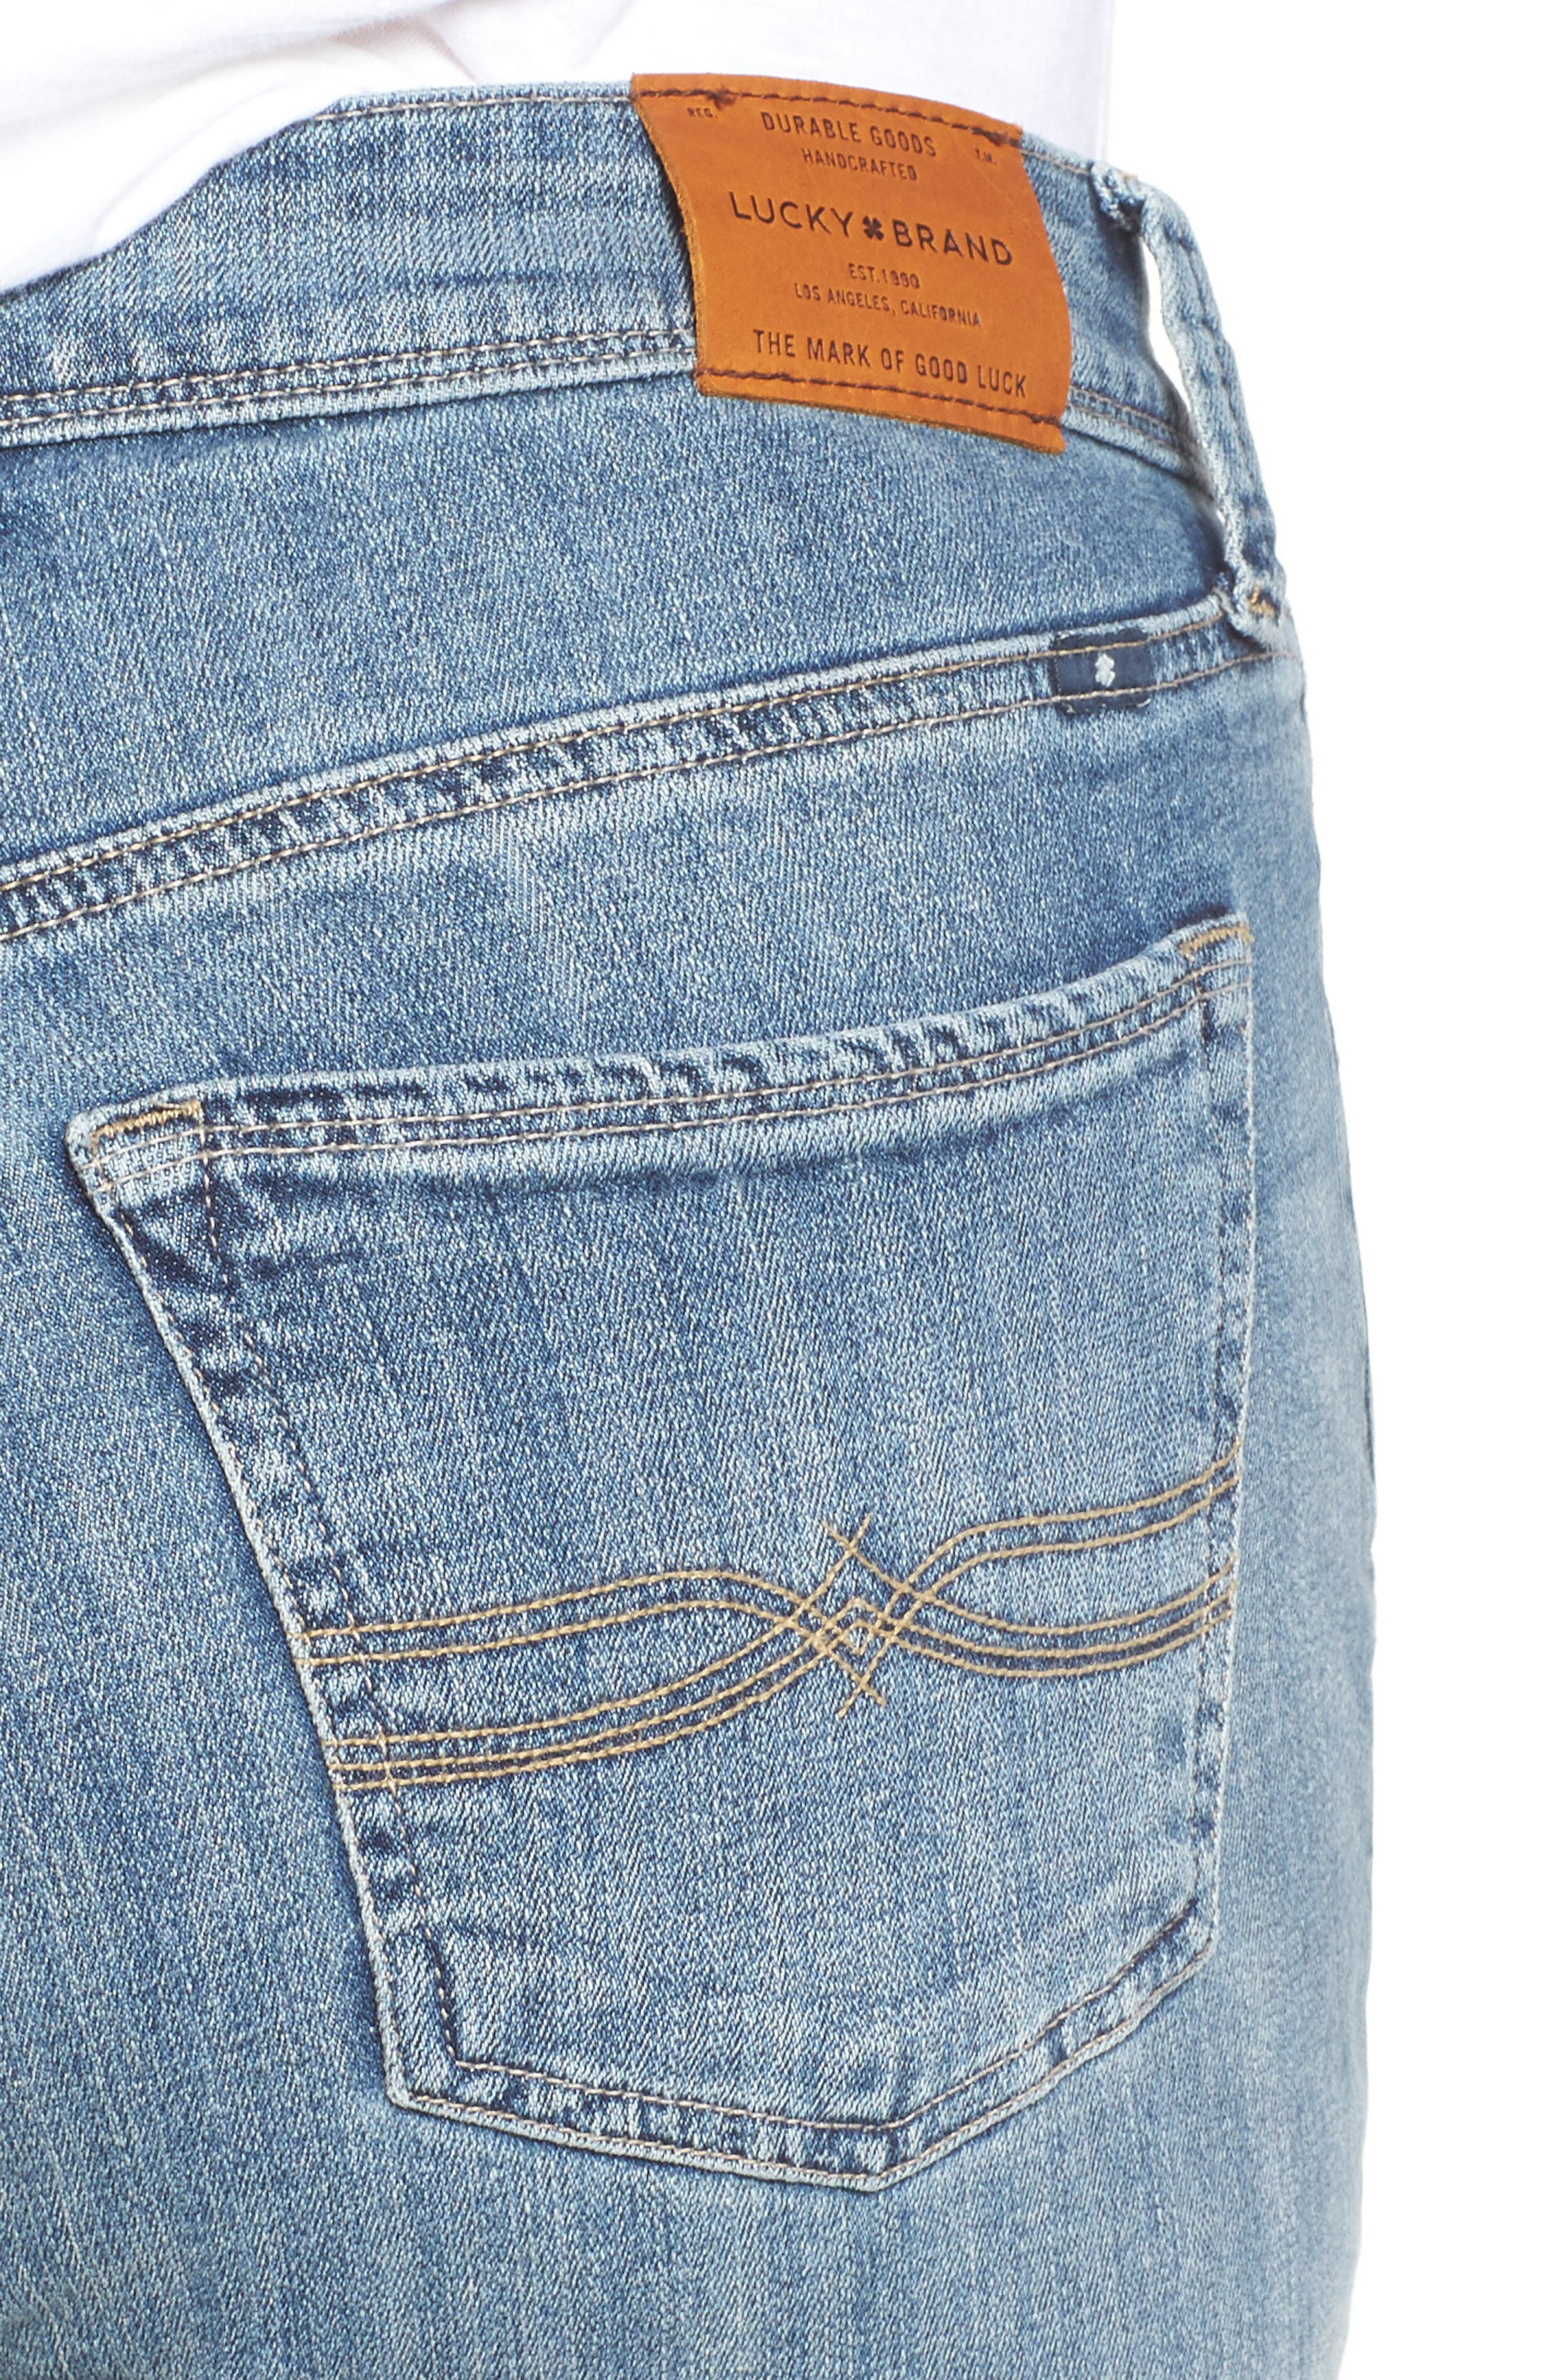 Reese Distressed Stretch Boyfriend Jeans,                             Alternate thumbnail 4, color,                             420